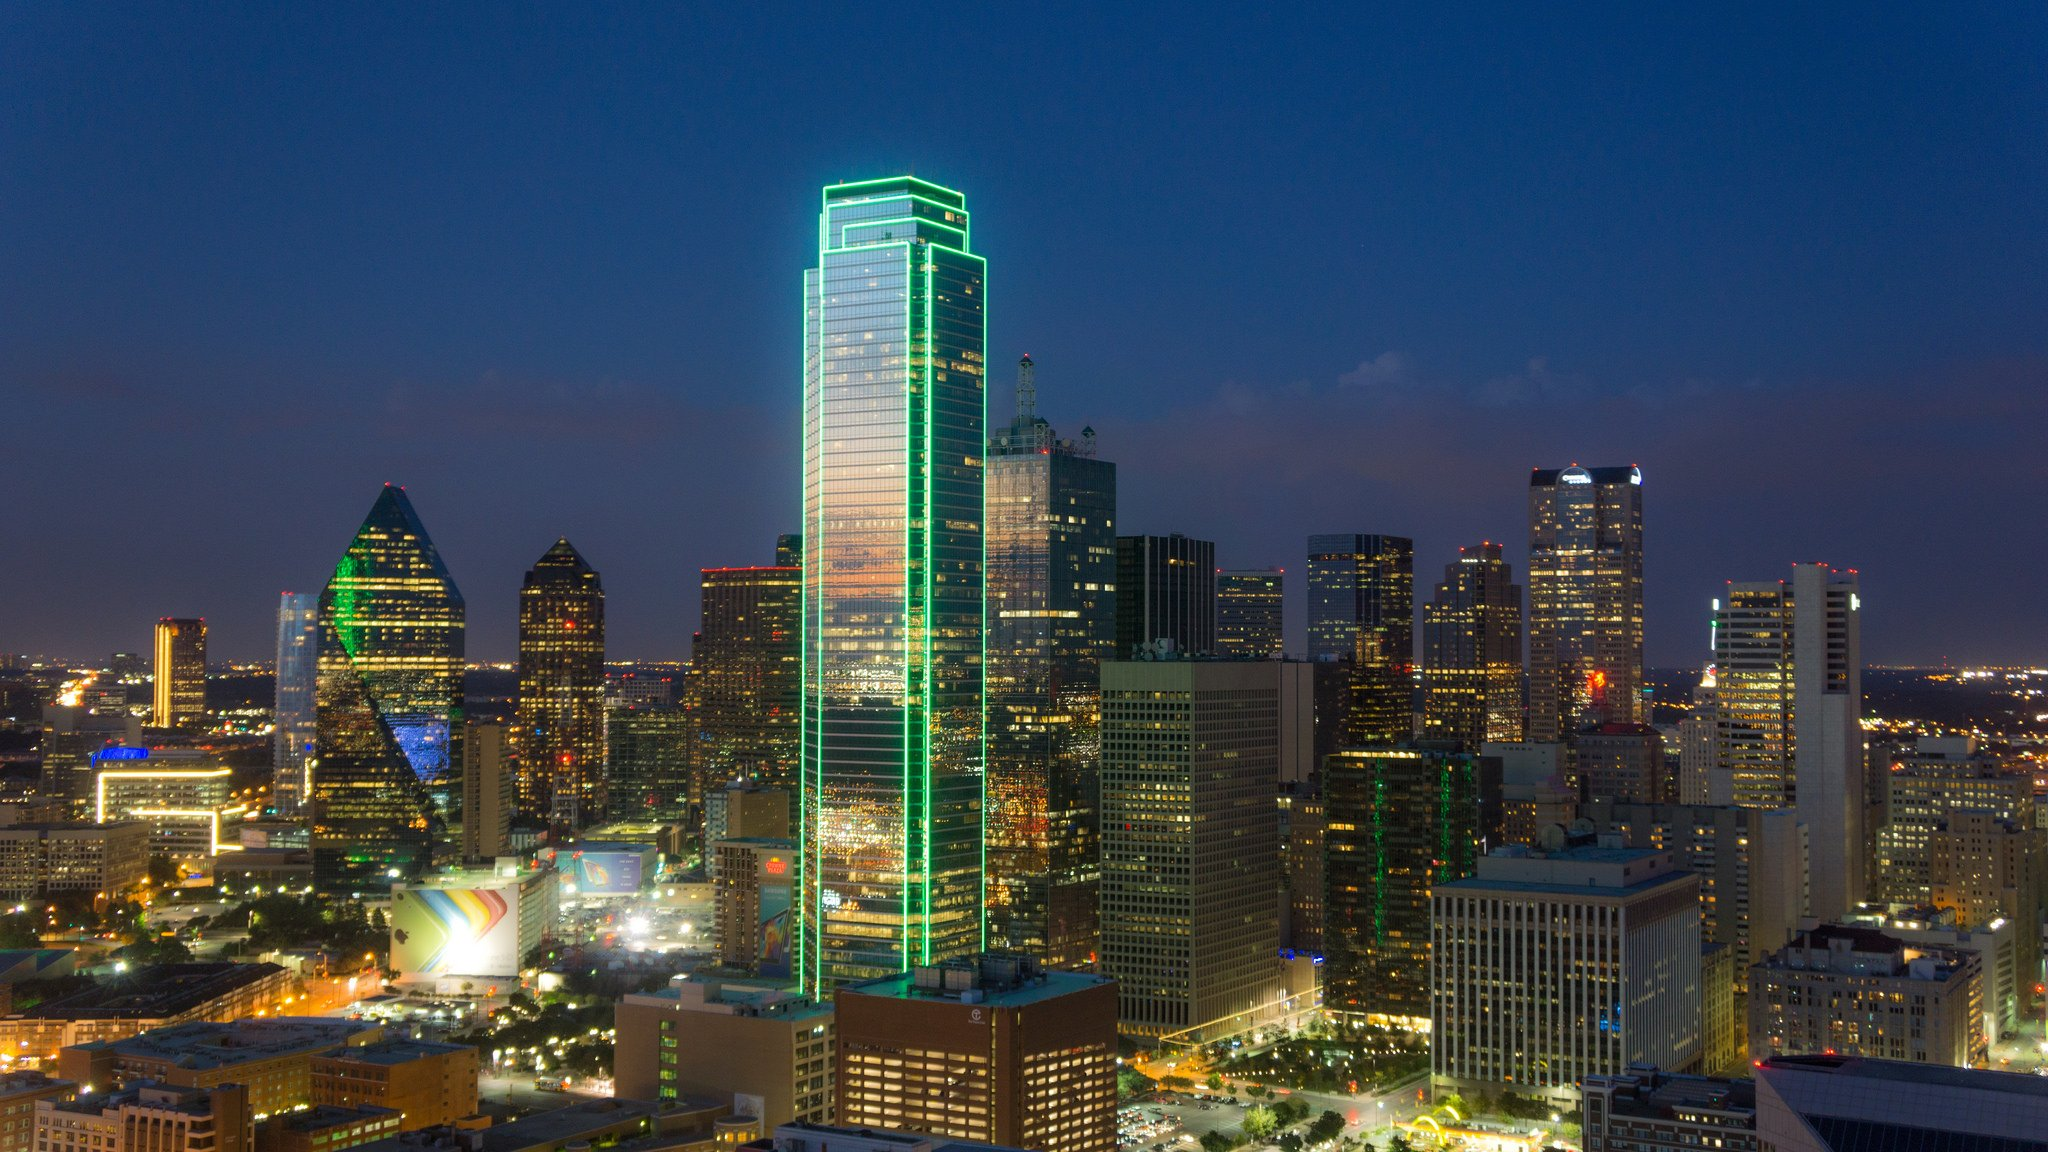 downtown dallas hd wallpapers - photo #48